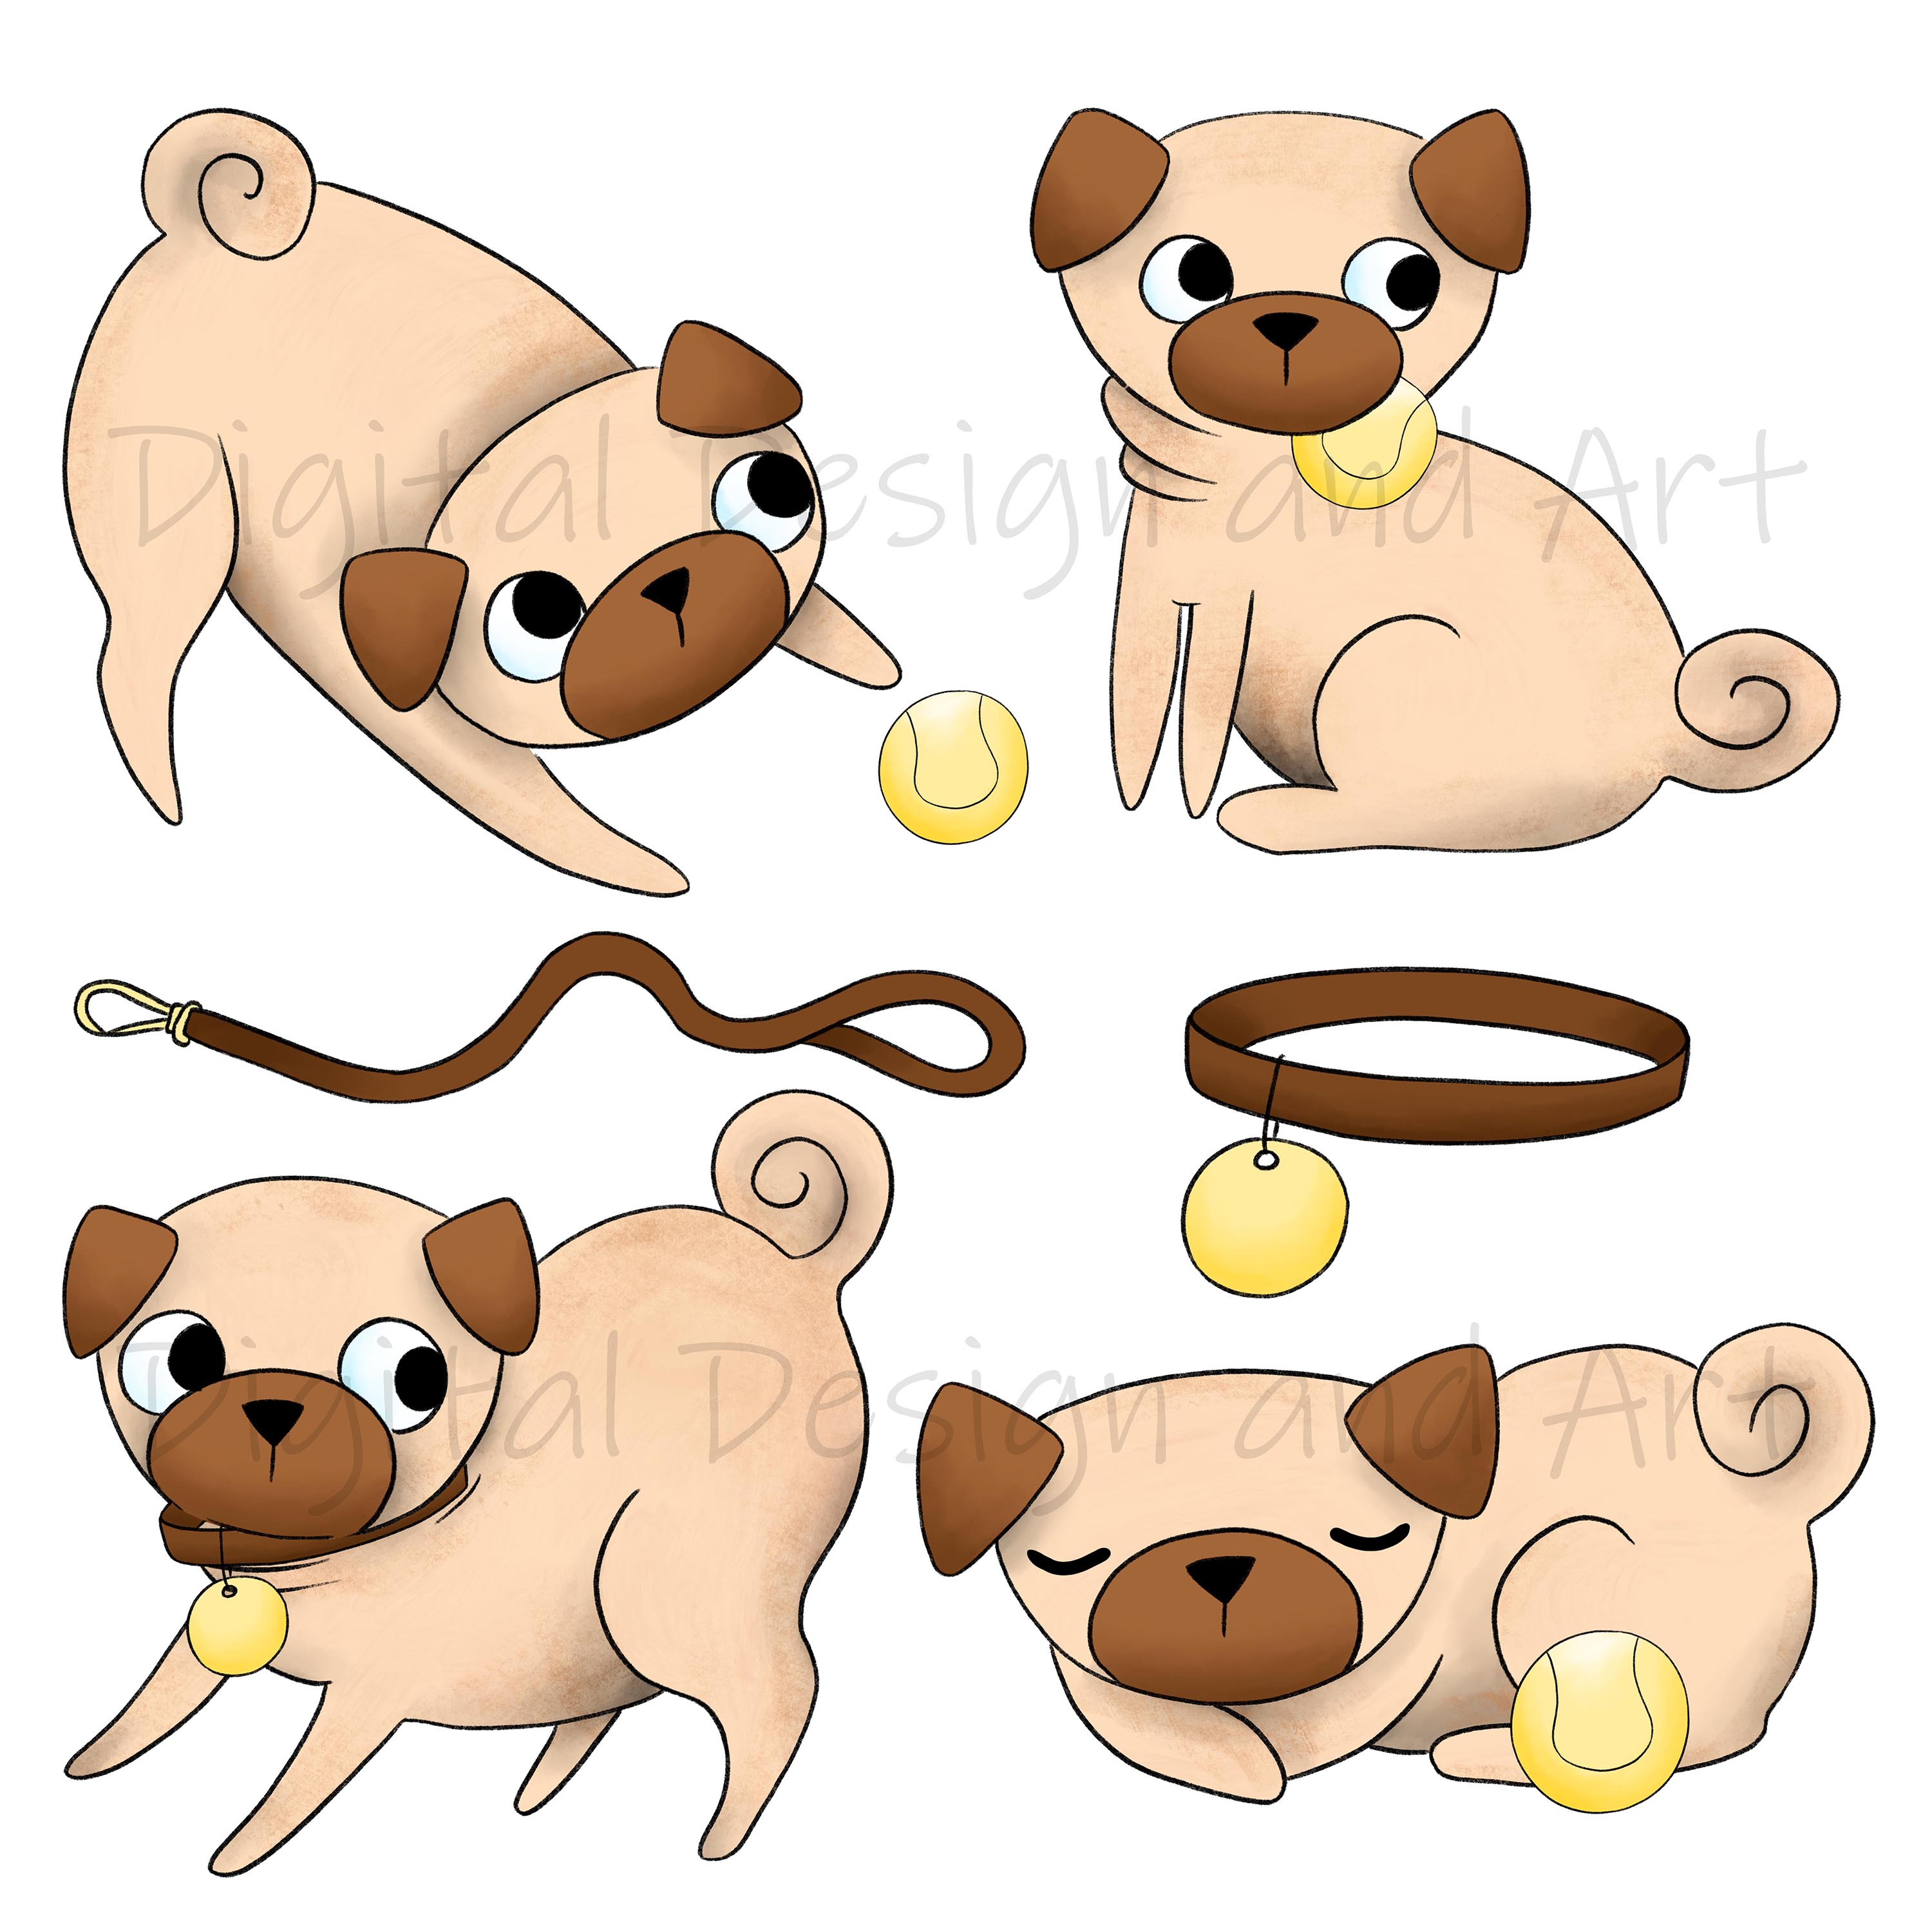 Pug clipart example image 4